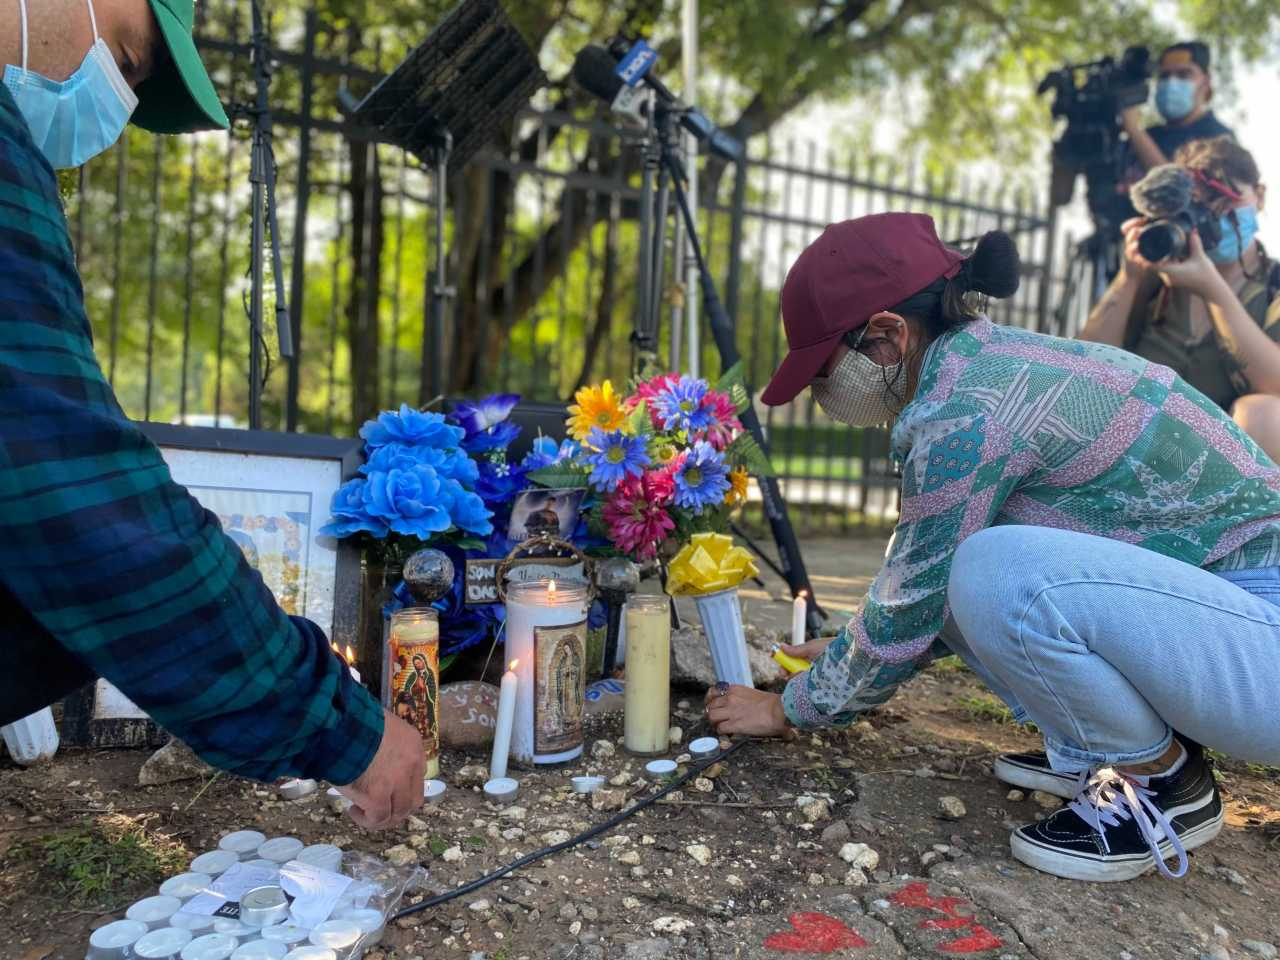 Families hold rally calling for justice for men shot dead in Austin